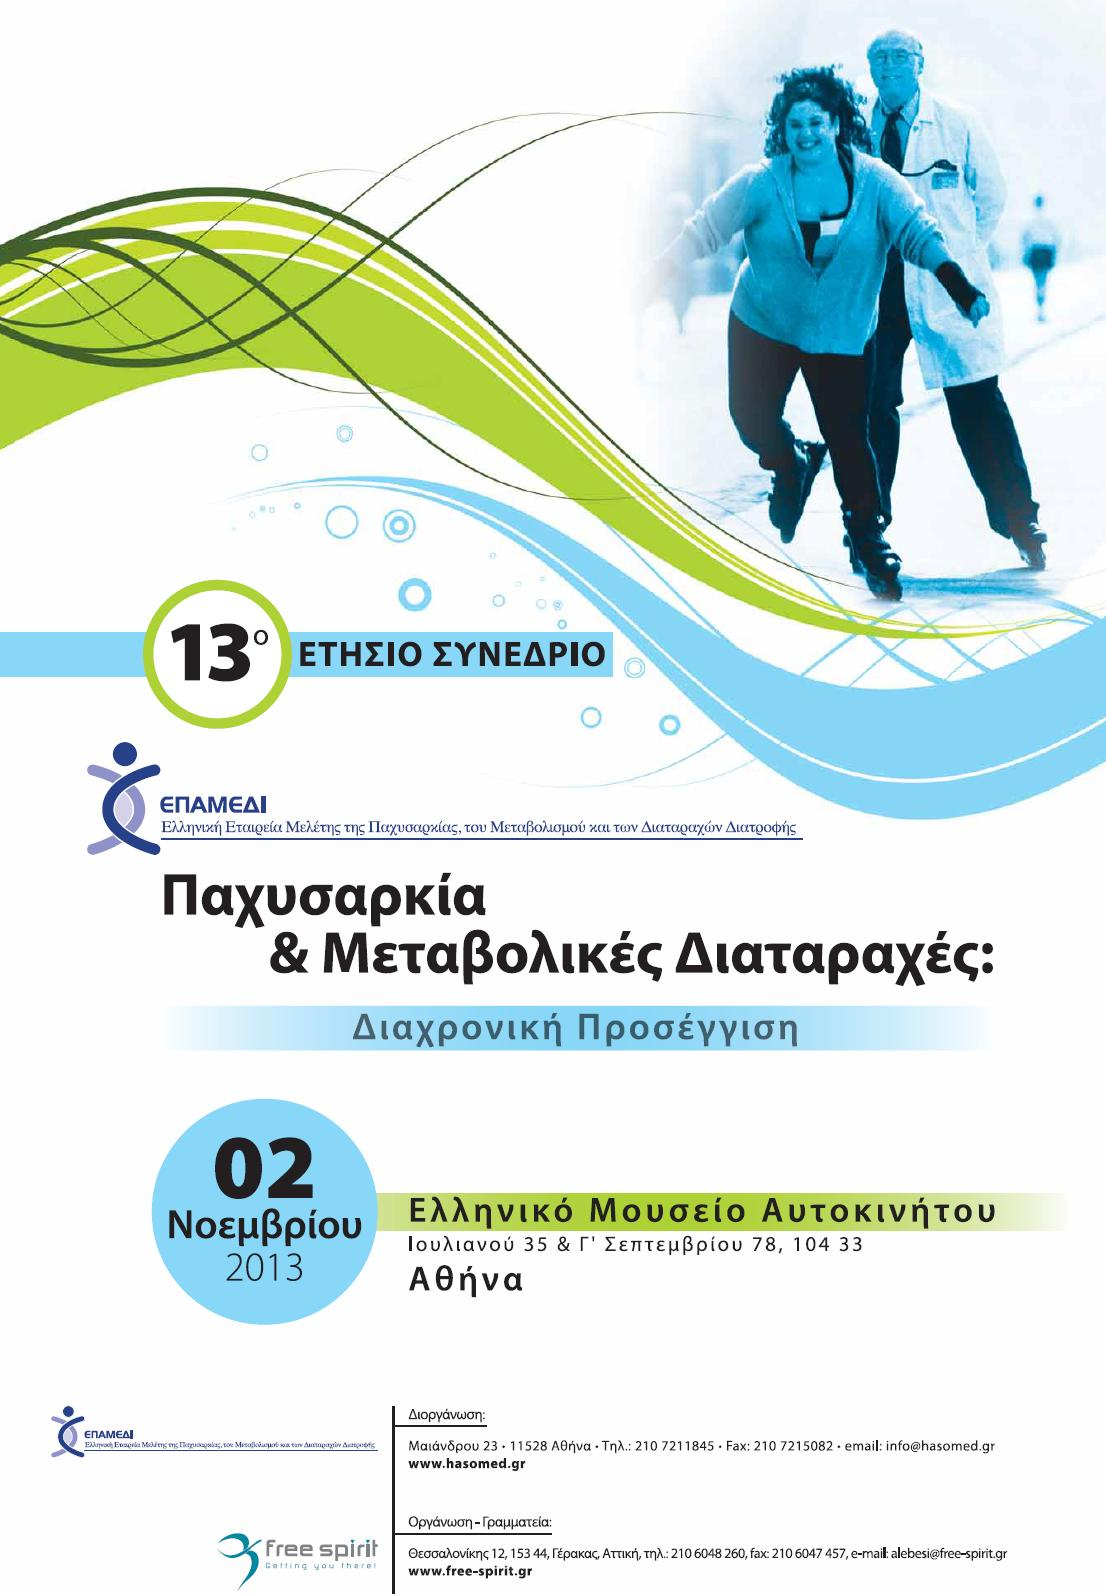 13th Panhellenic Conference on Obesity & Metabolic Disorders: Longitudinal Approach